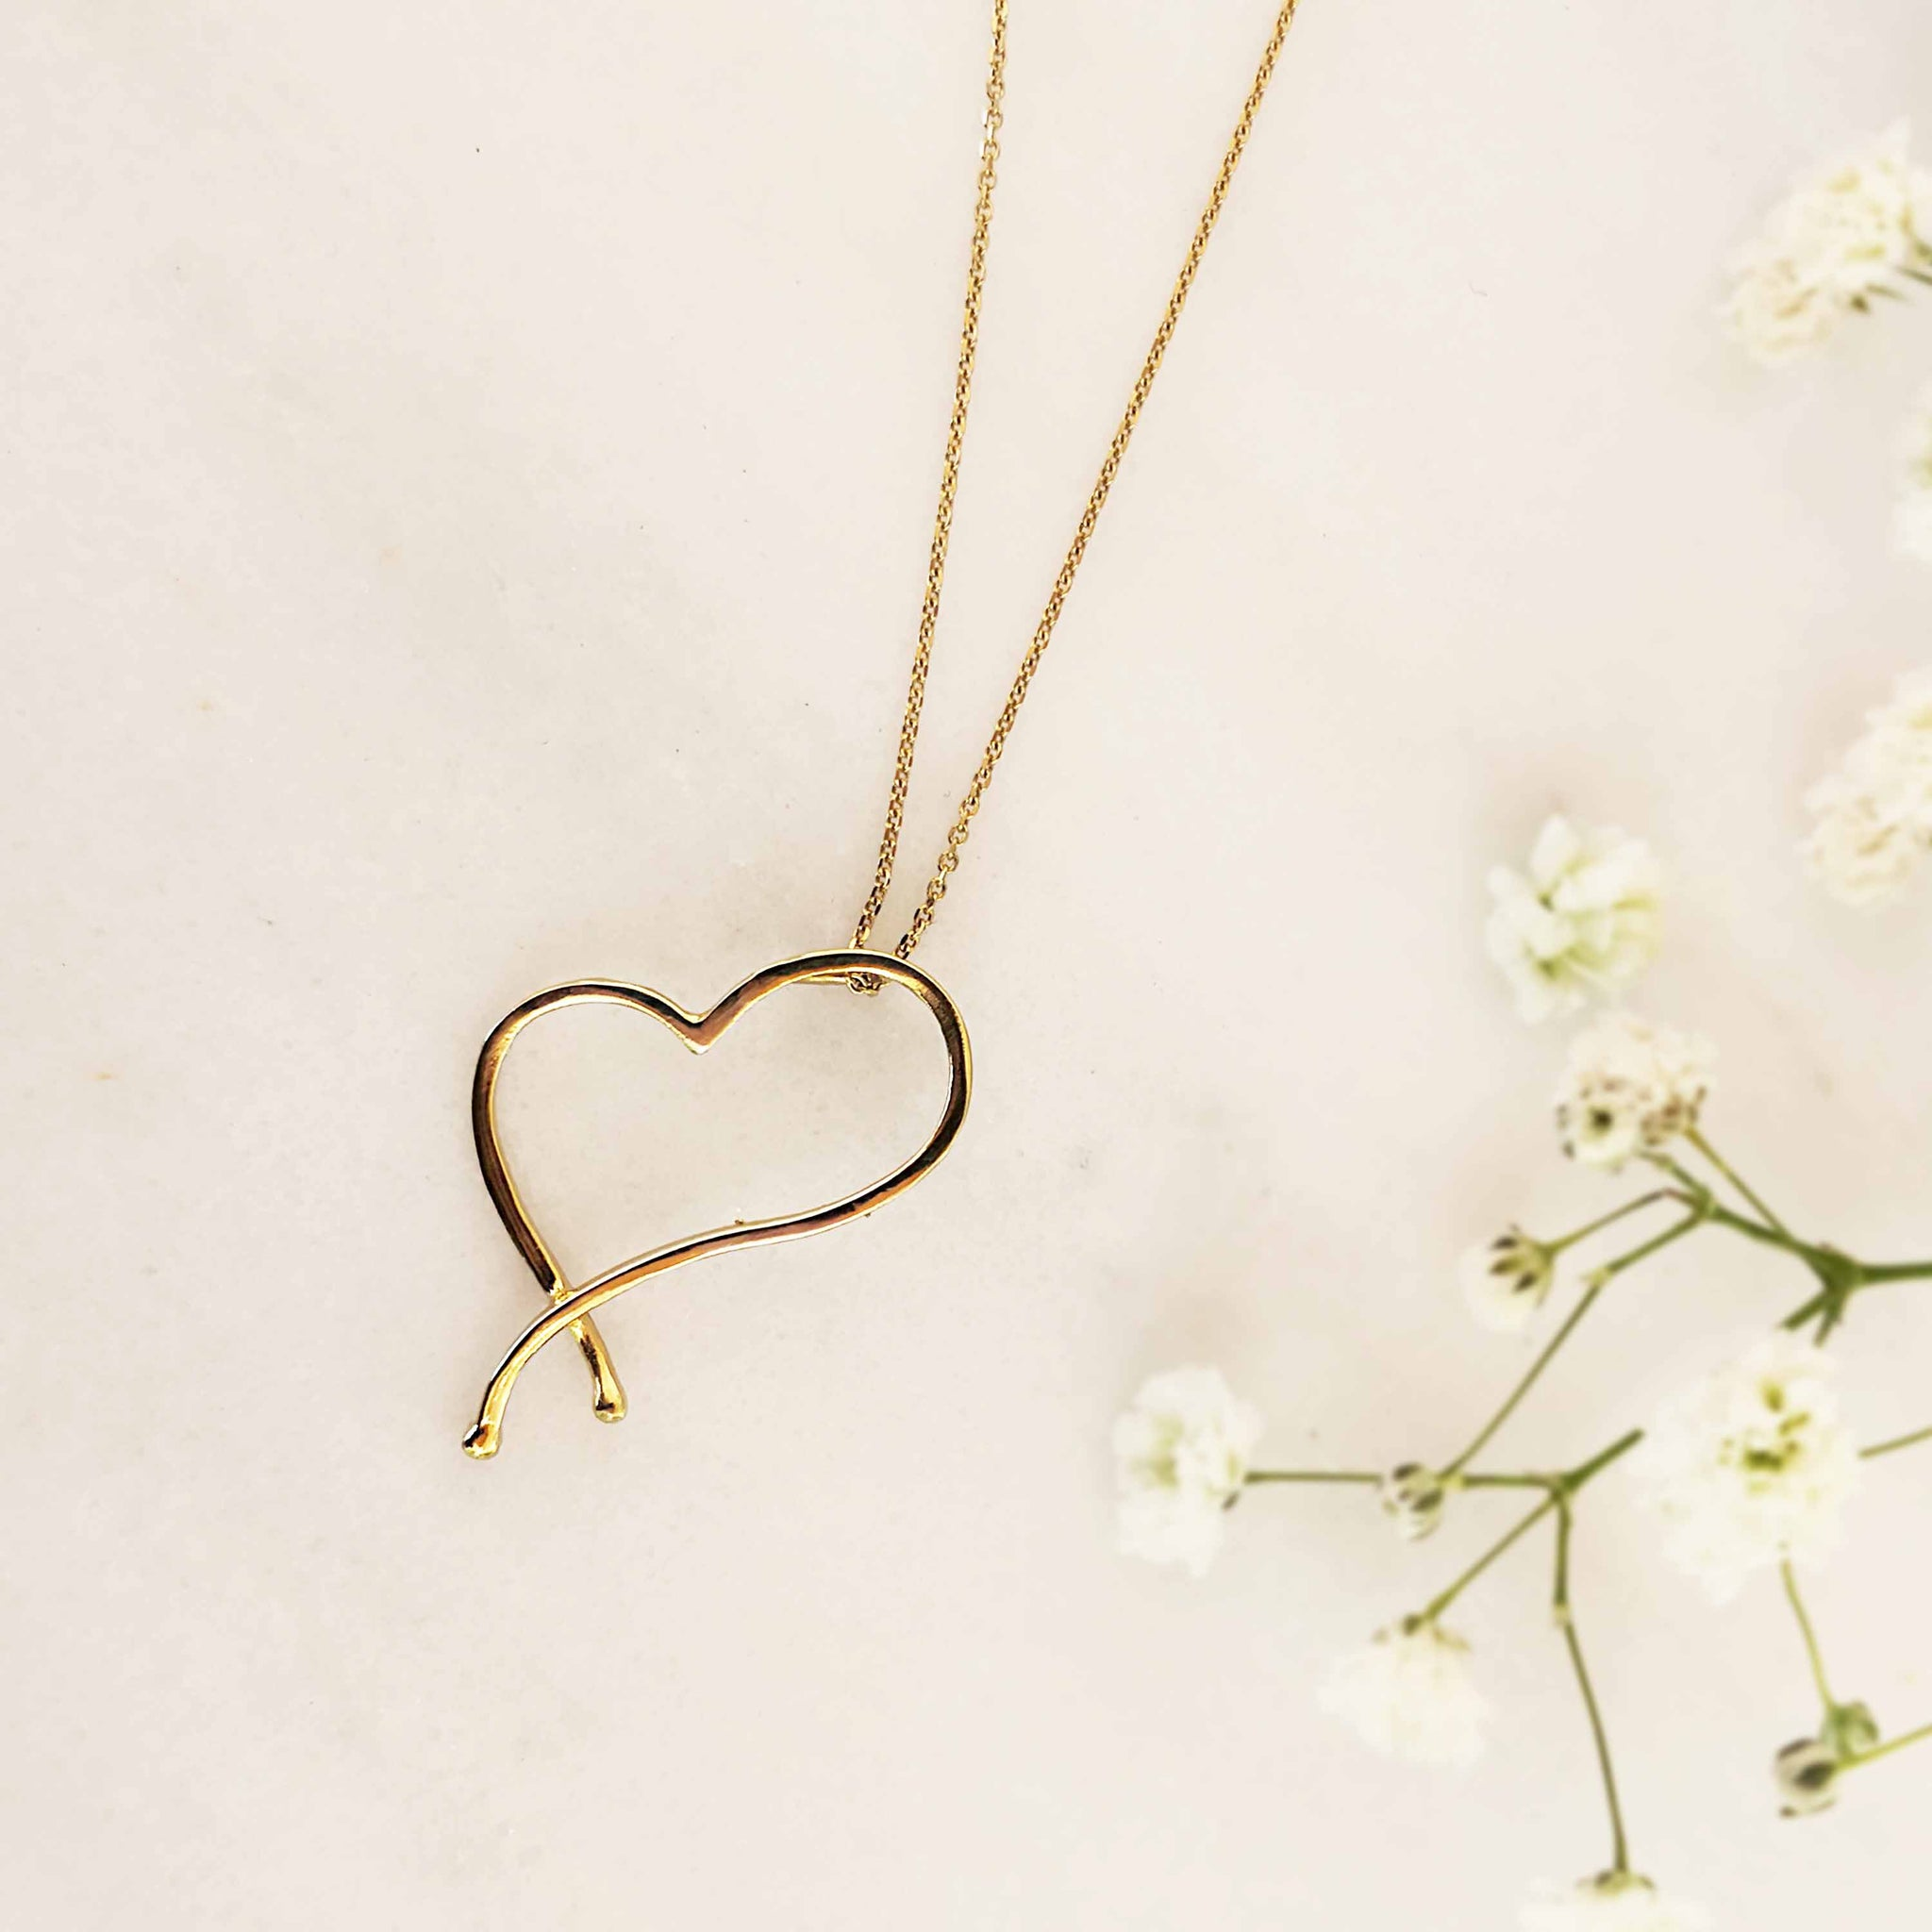 Minimal Necklace with an elegant heart pendant